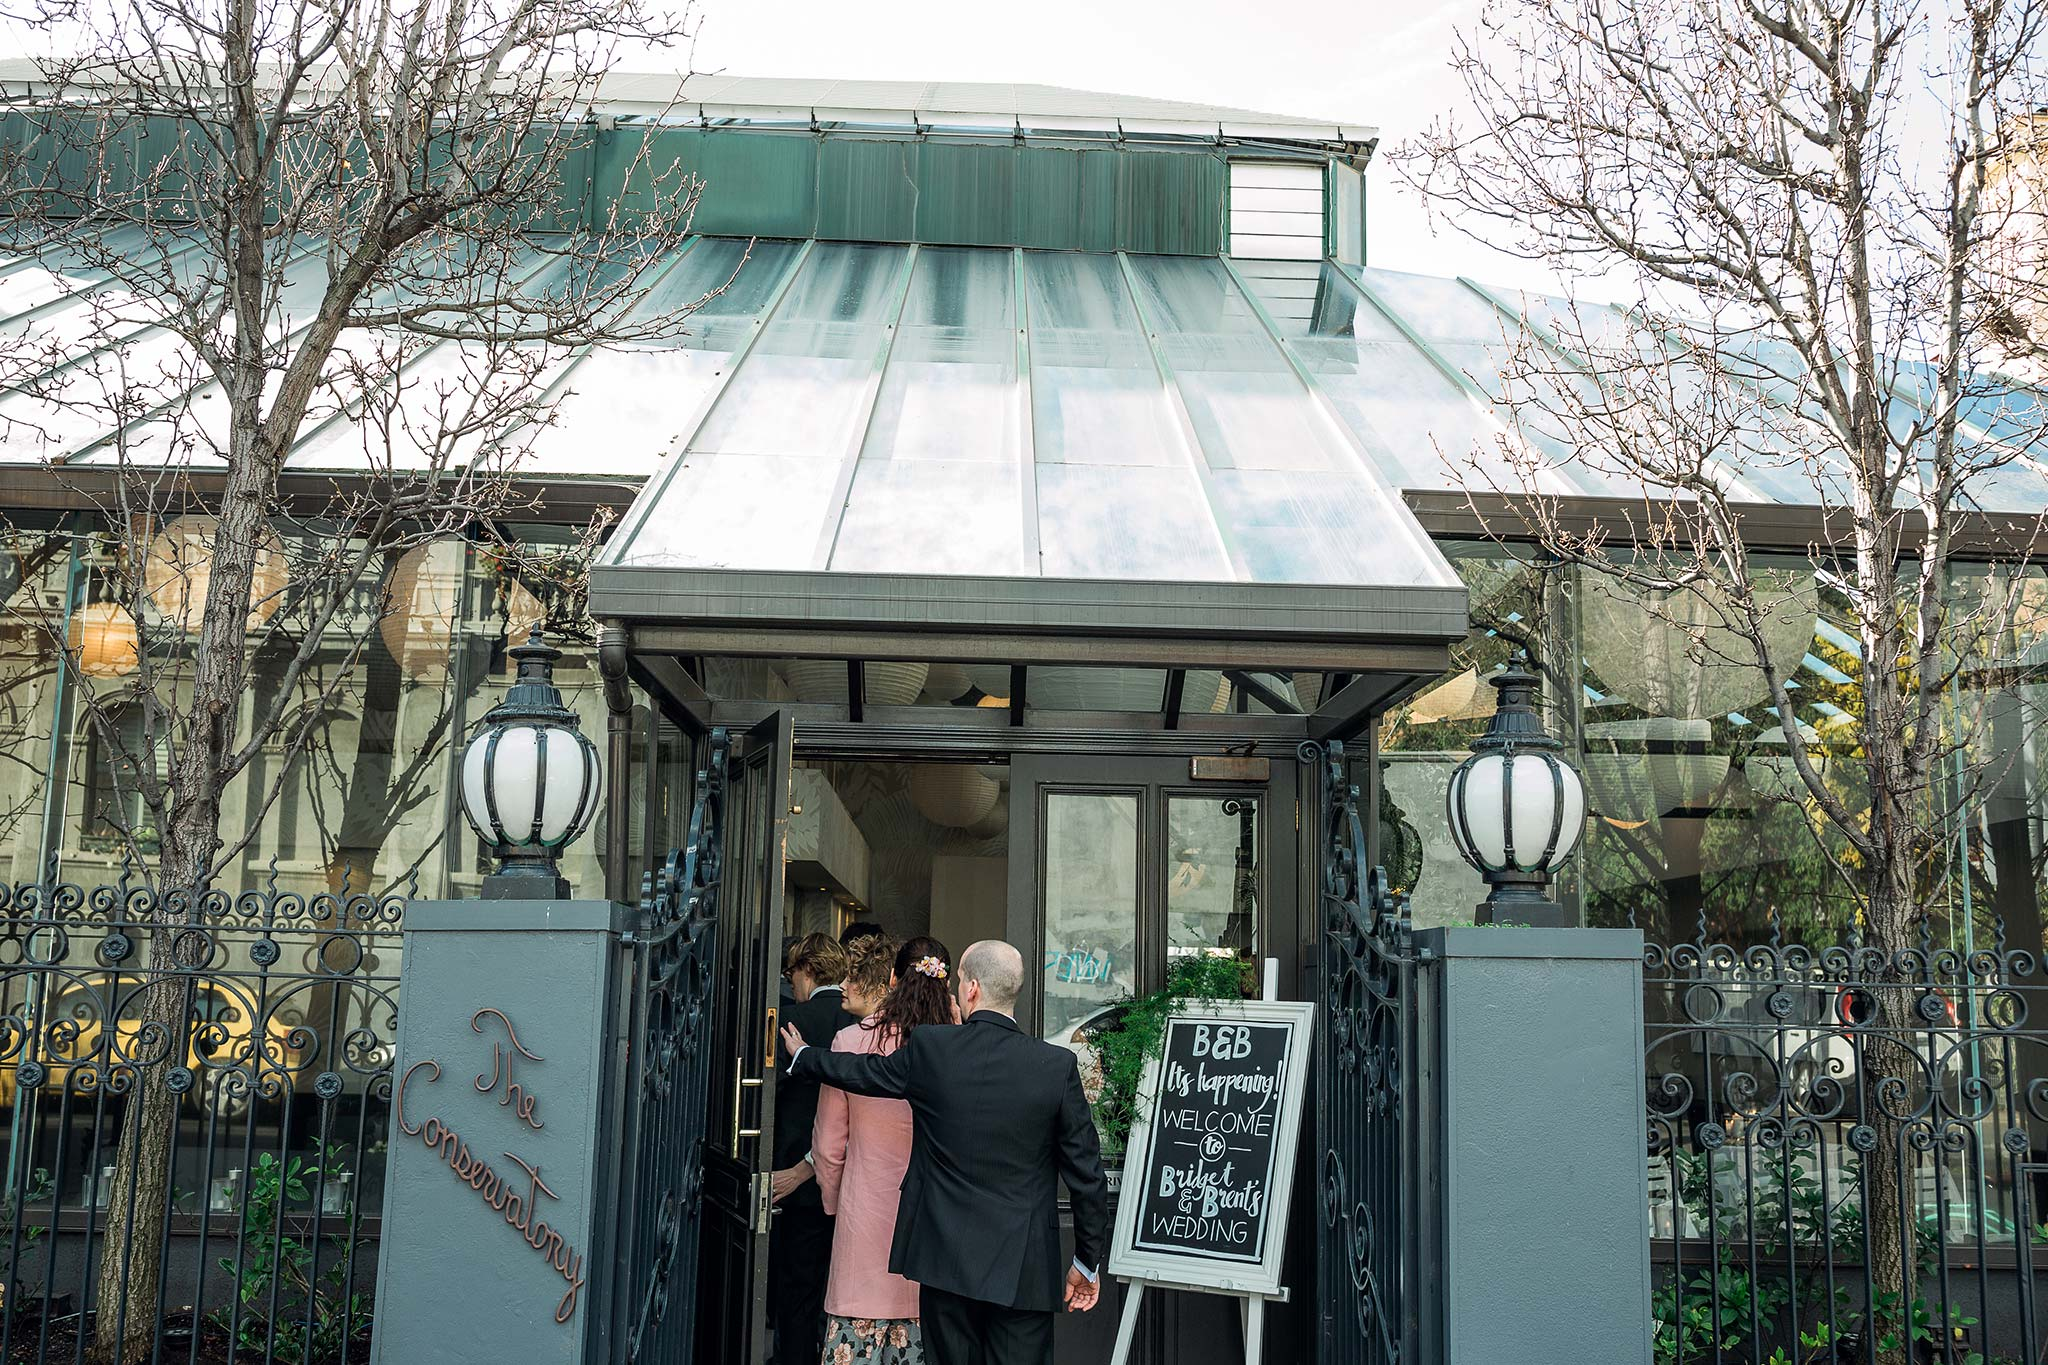 melbourne-fitzroy-st-andrews-conservatory-pumphouse-wedding-venue-ceremony-guests-arrival